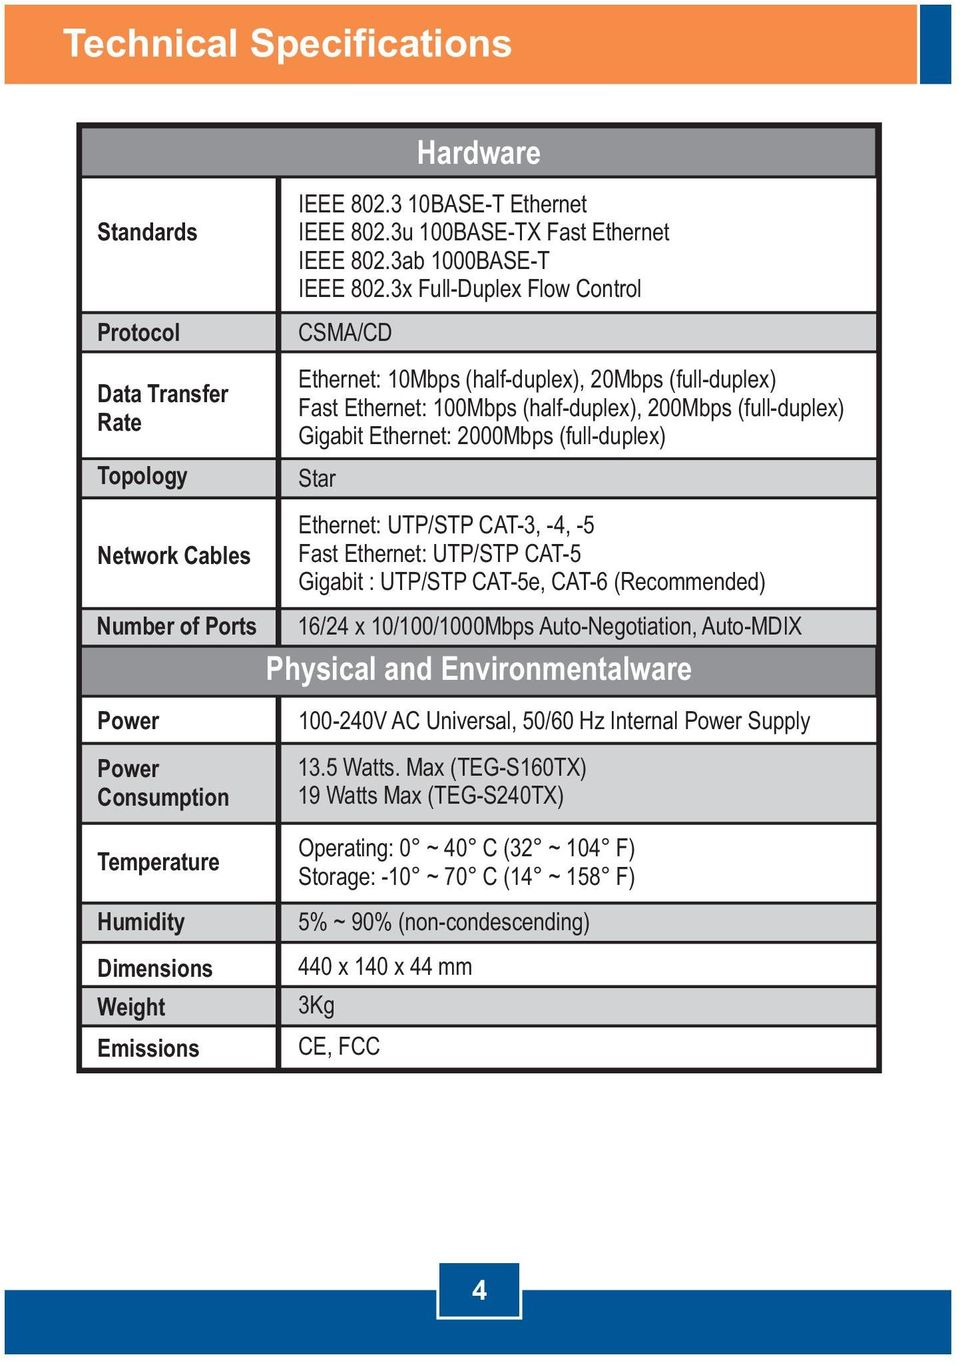 Ethernet: UTP/STP CAT-3, -4, -5 Fast Ethernet: UTP/STP CAT-5 Gigabit : UTP/STP CAT-5e, CAT-6 (Recommended) Number of Ports 16/24 x 10/100/1000Mbps Auto-Negotiation, Auto-MDIX Physical and